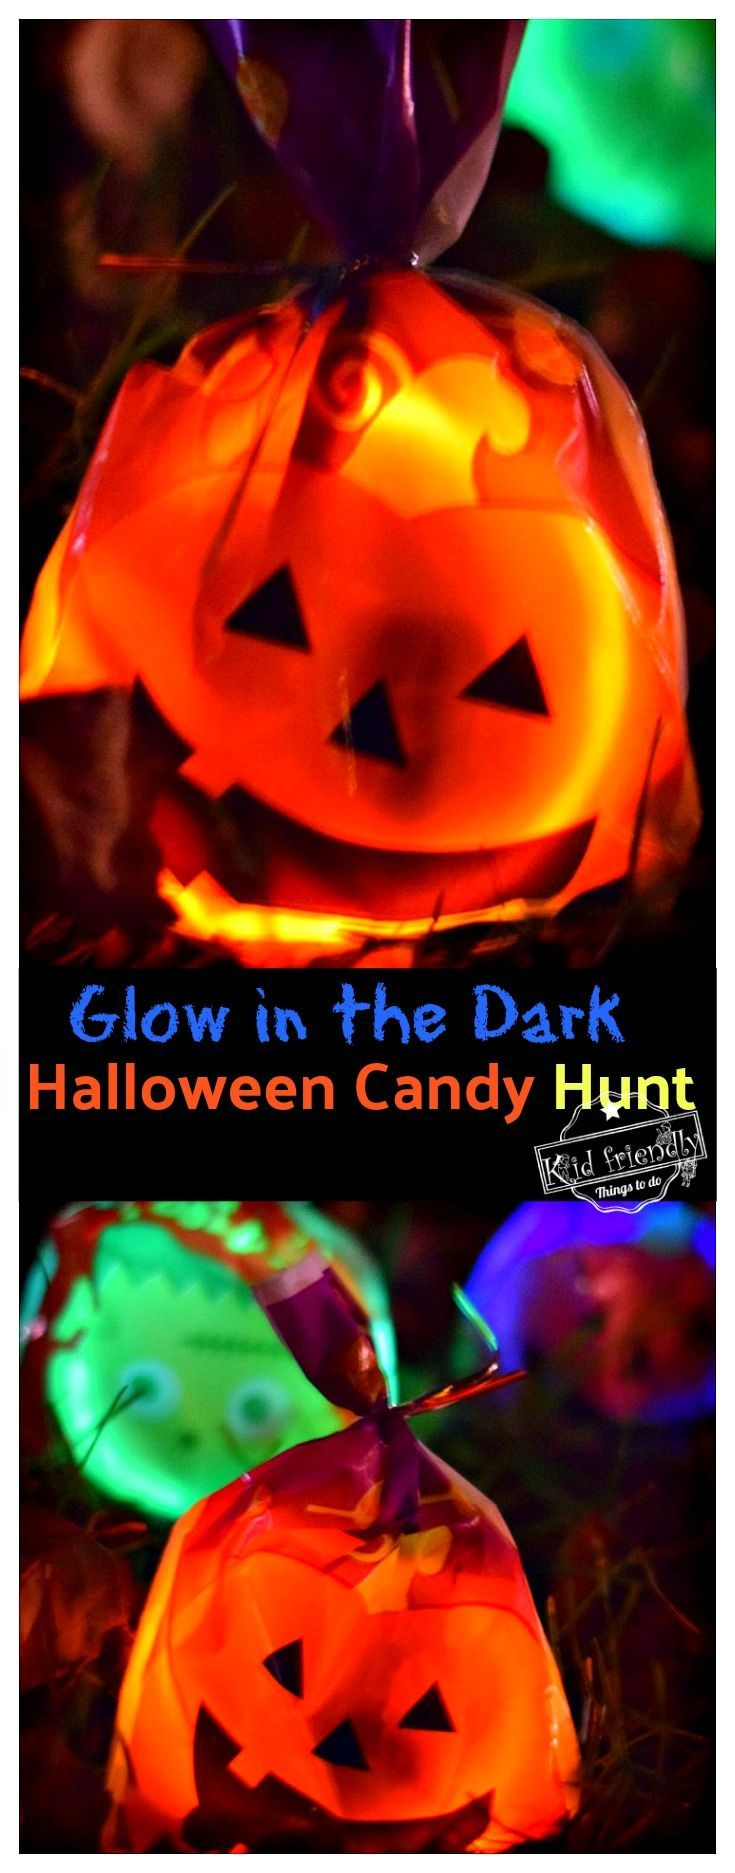 A Glow in the Dark Halloween Candy Hunt Idea for Kids